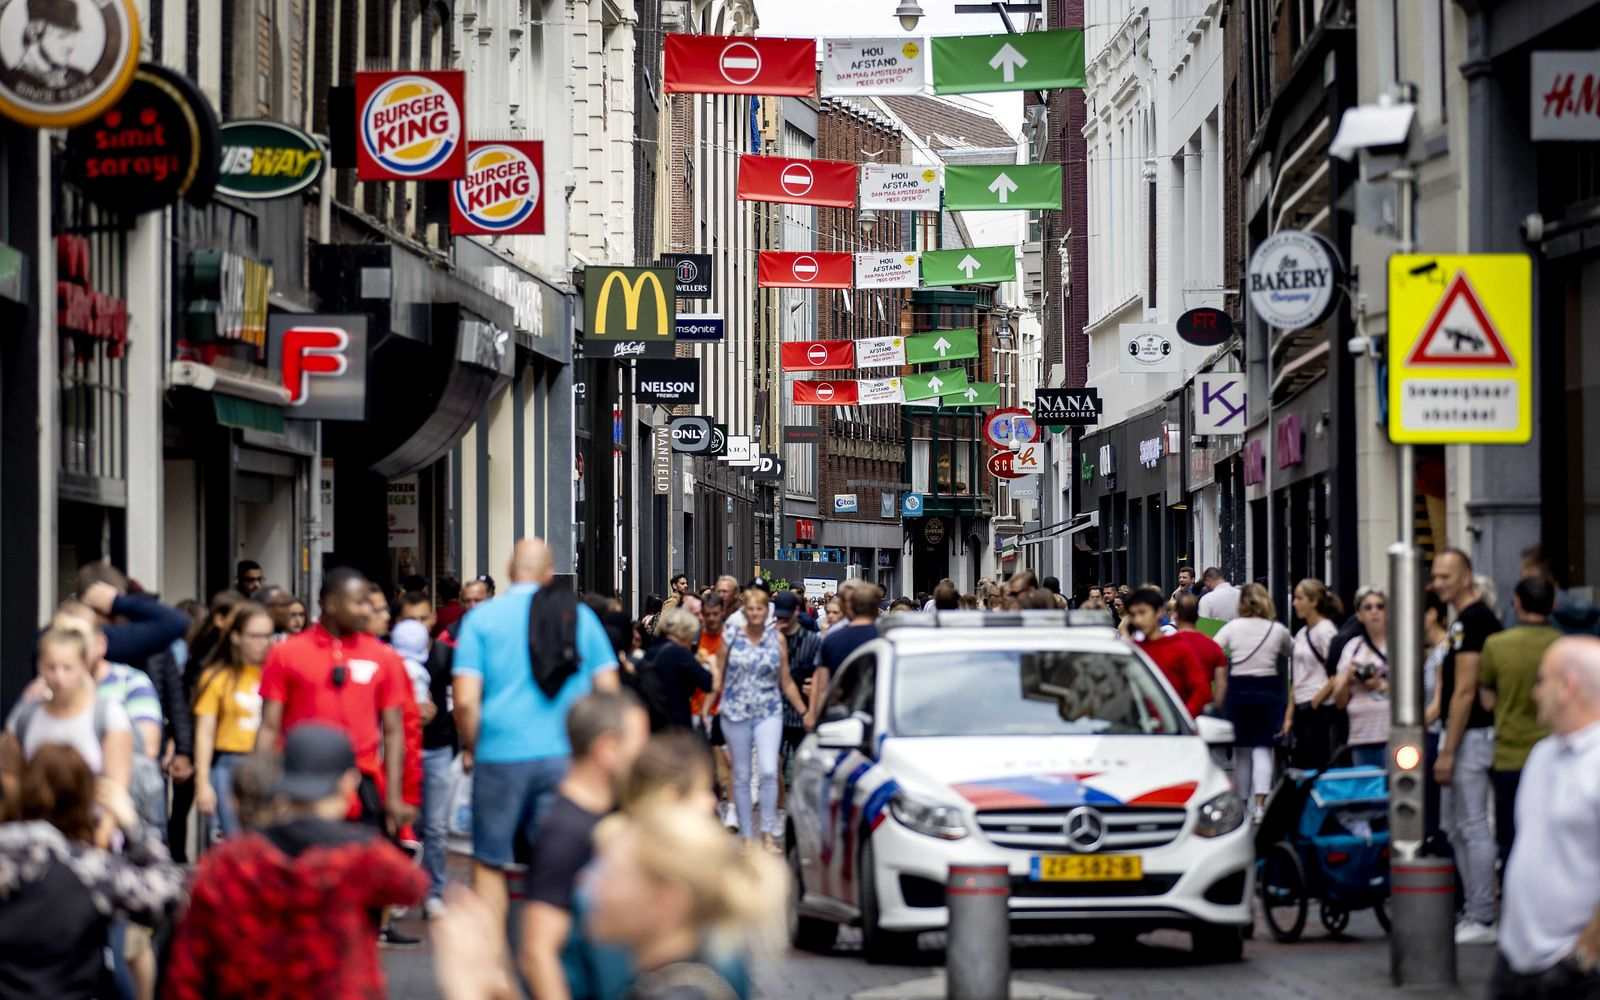 Extra measures on covid-19 pandemic in the center of Amsterdam, Netherlands - 23 Jul 2020